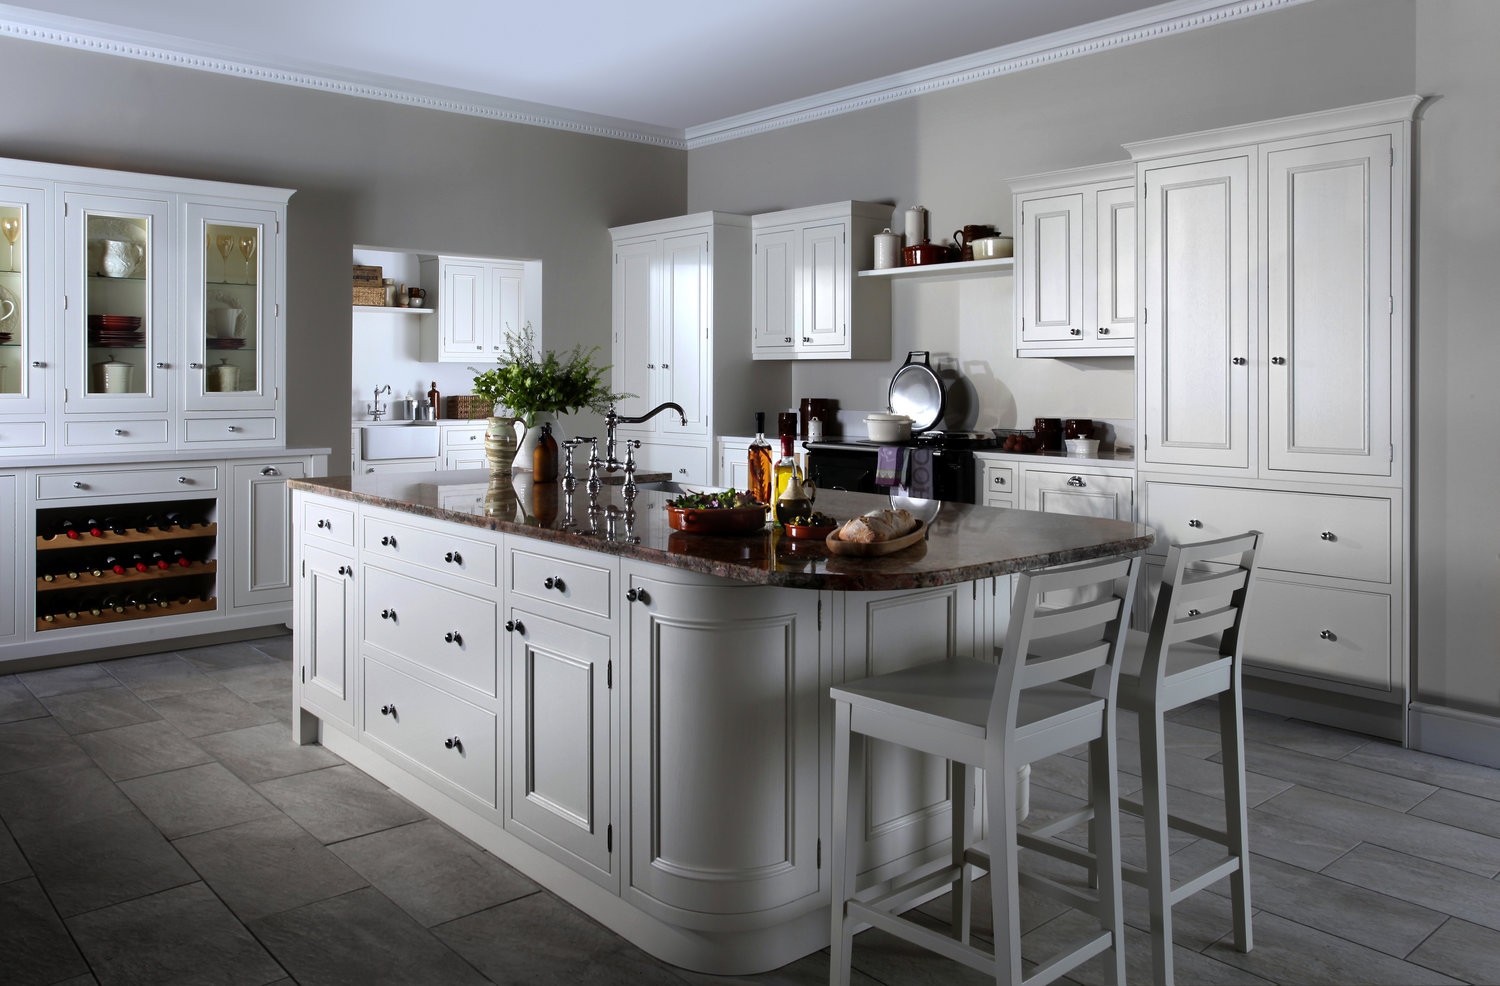 classic english painted, just one of the many kitchen styles we offer.